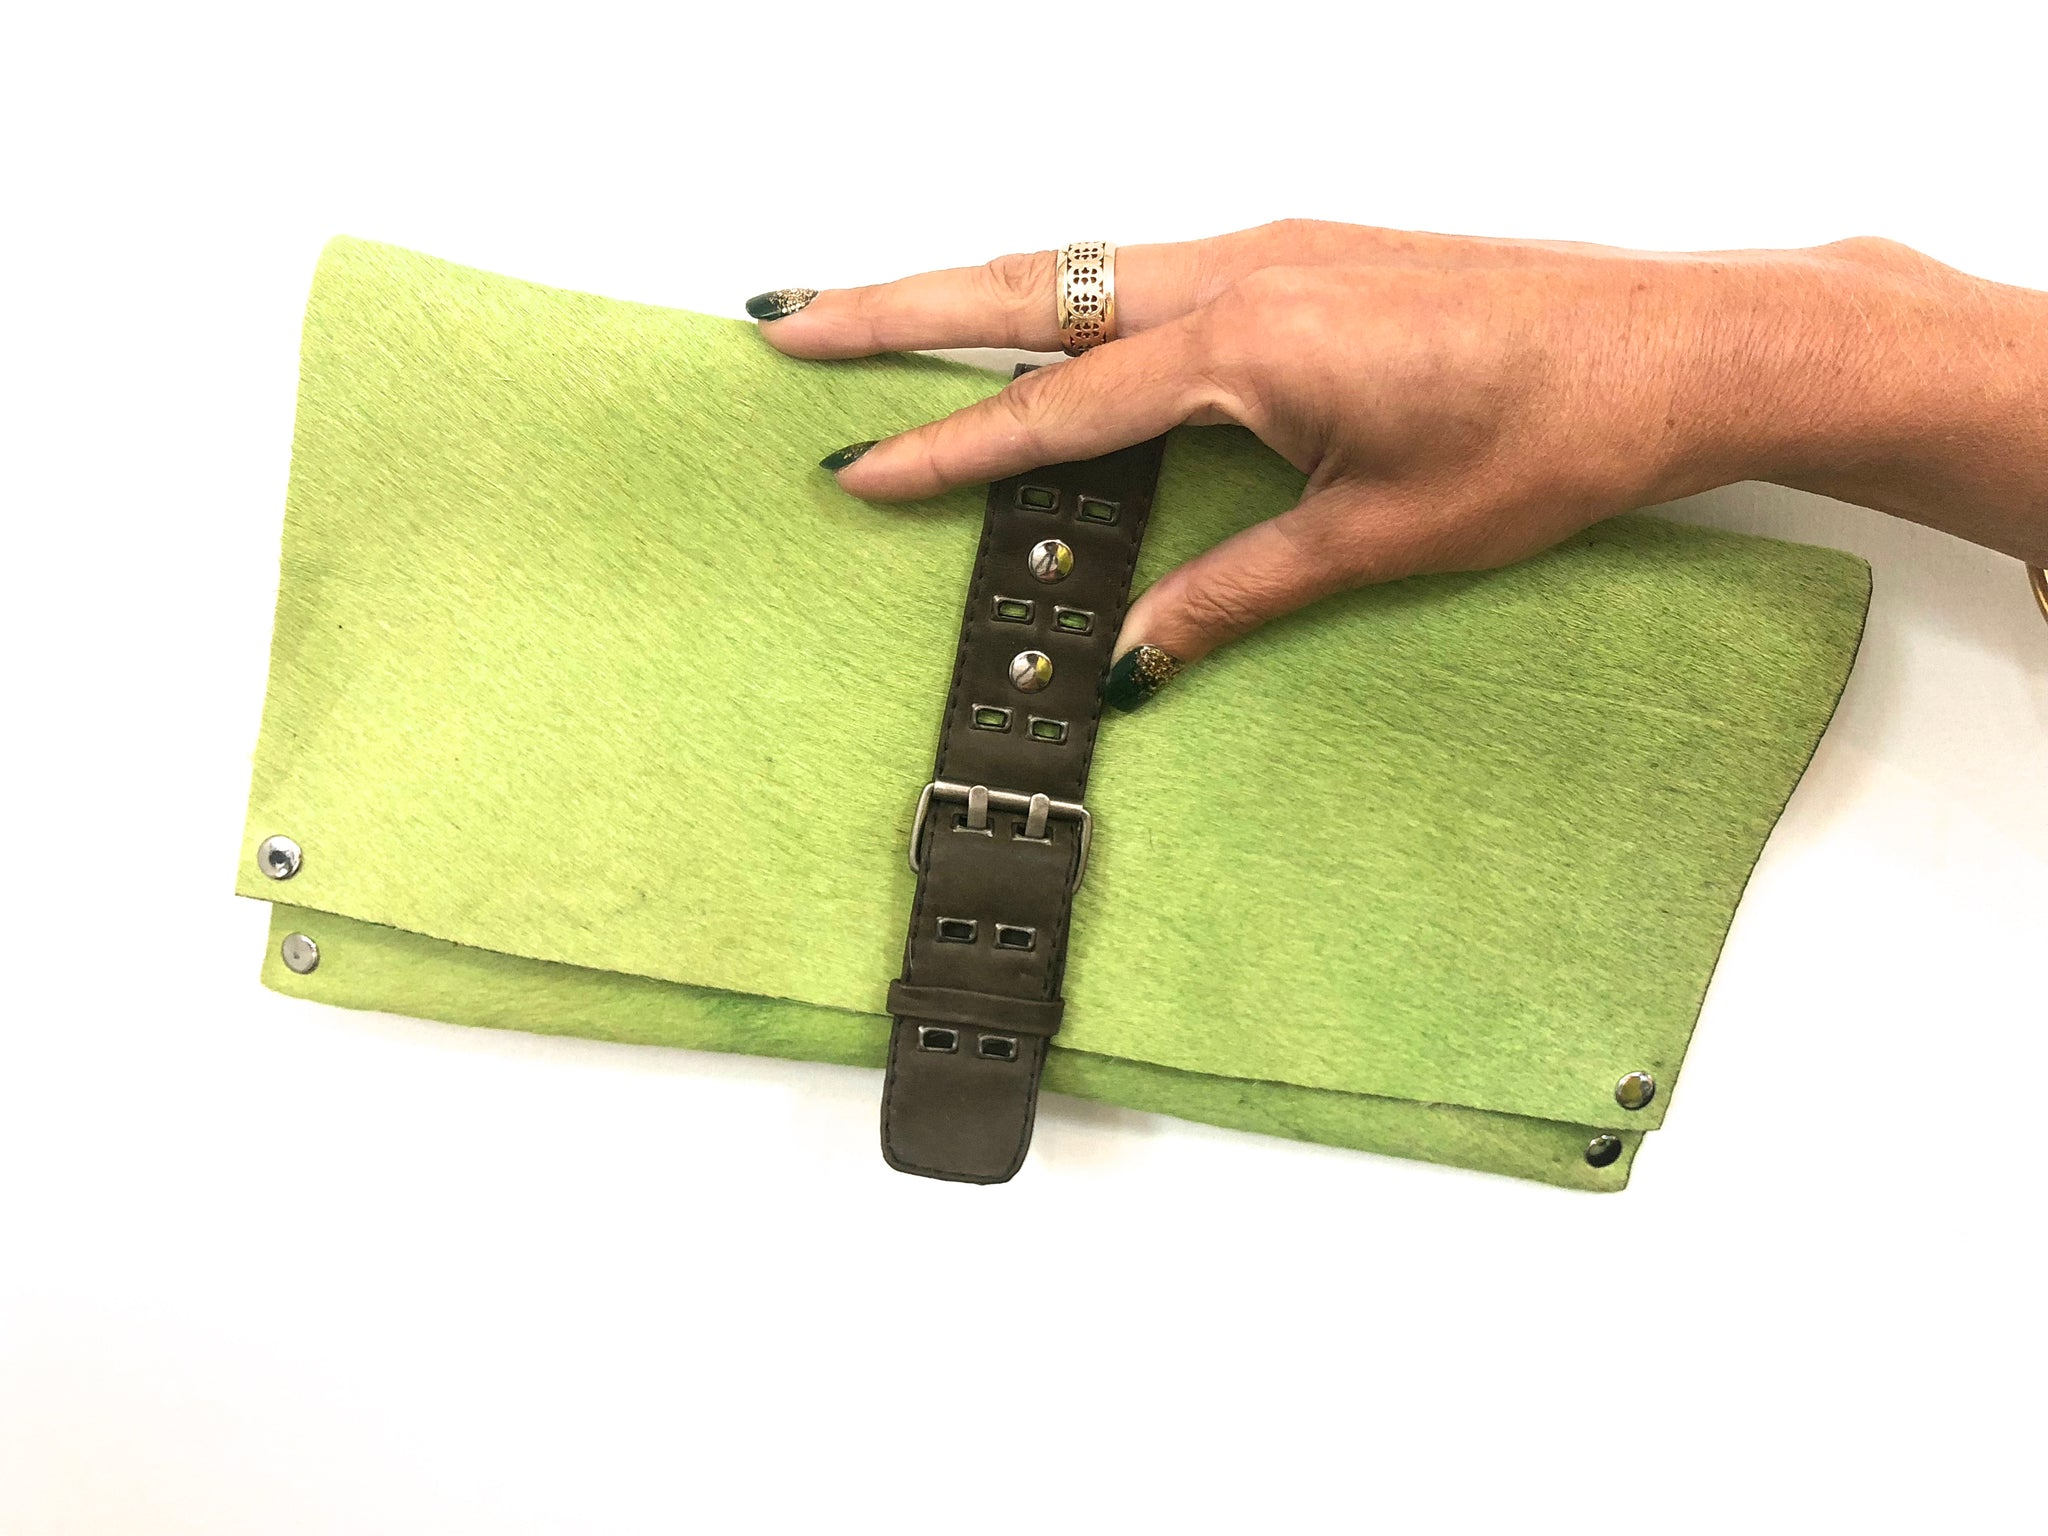 GREEN HAIR-ON COWHIDE CLUTCH WITH DETAILED UTILITY LEATHER STRAP AND BELT BUCKLE-STYLE CLOSURE by nyet jewelry